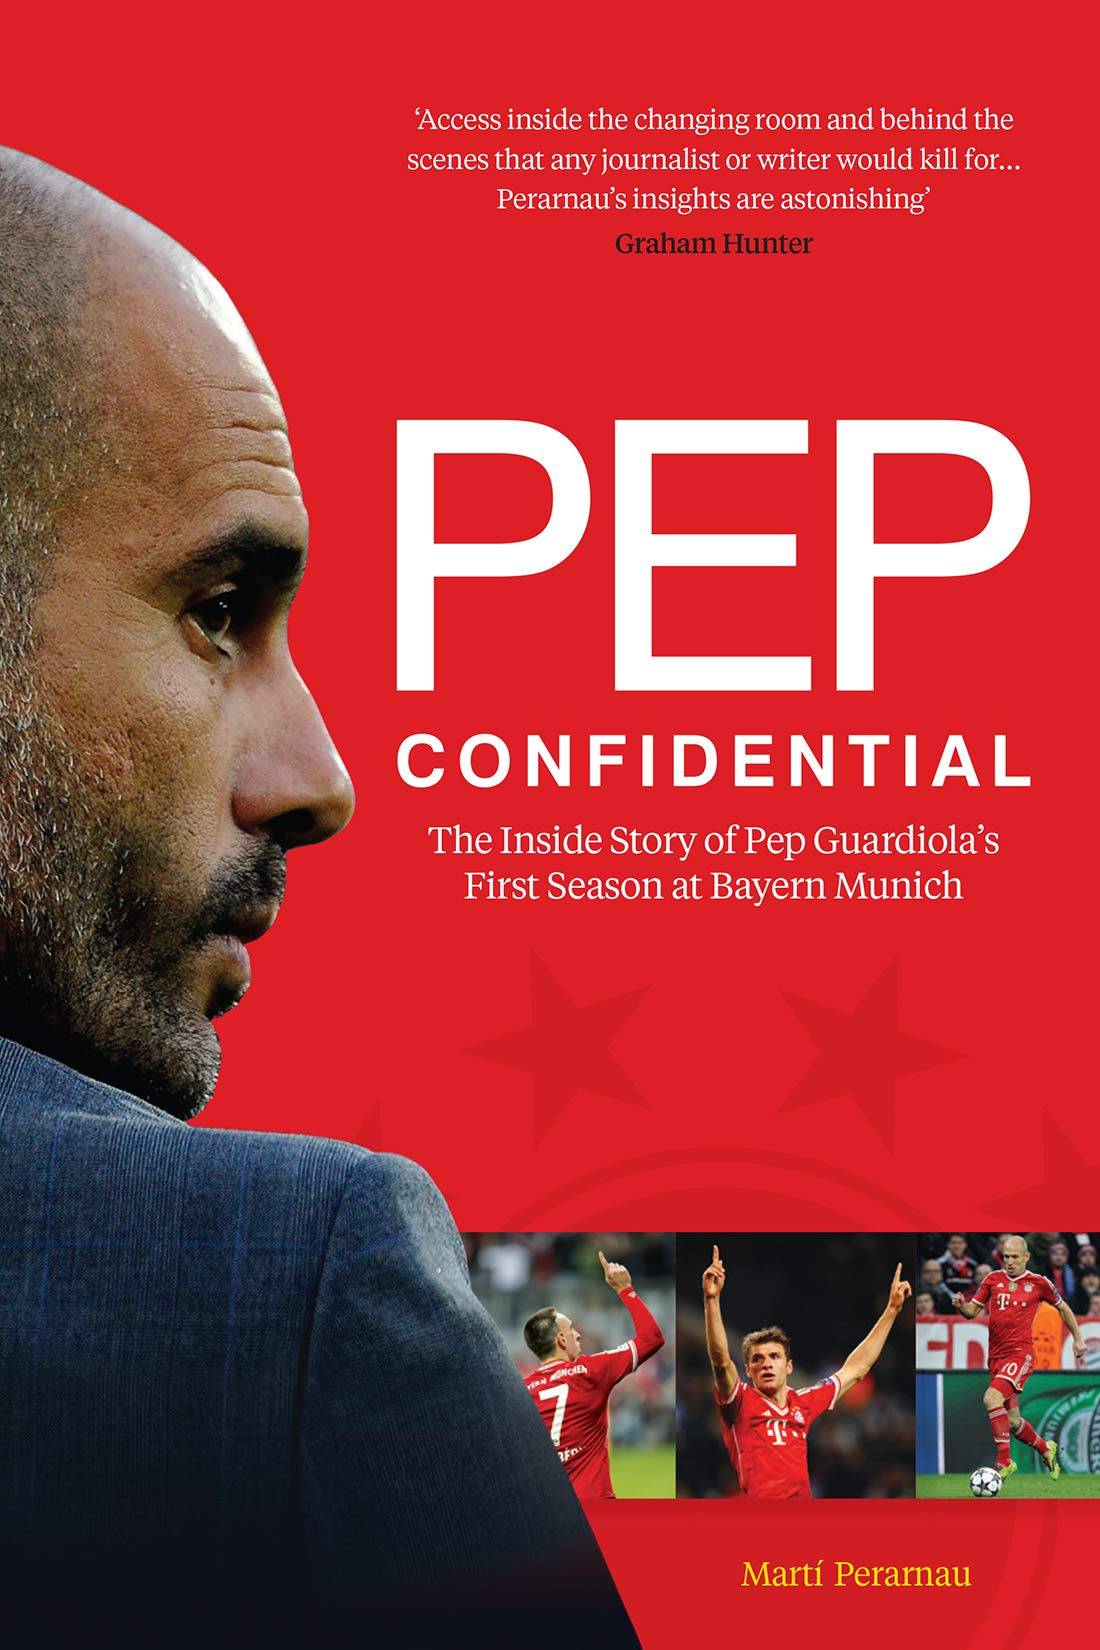 Pep Confidential: Inside Guardiola's First Season at Bayern